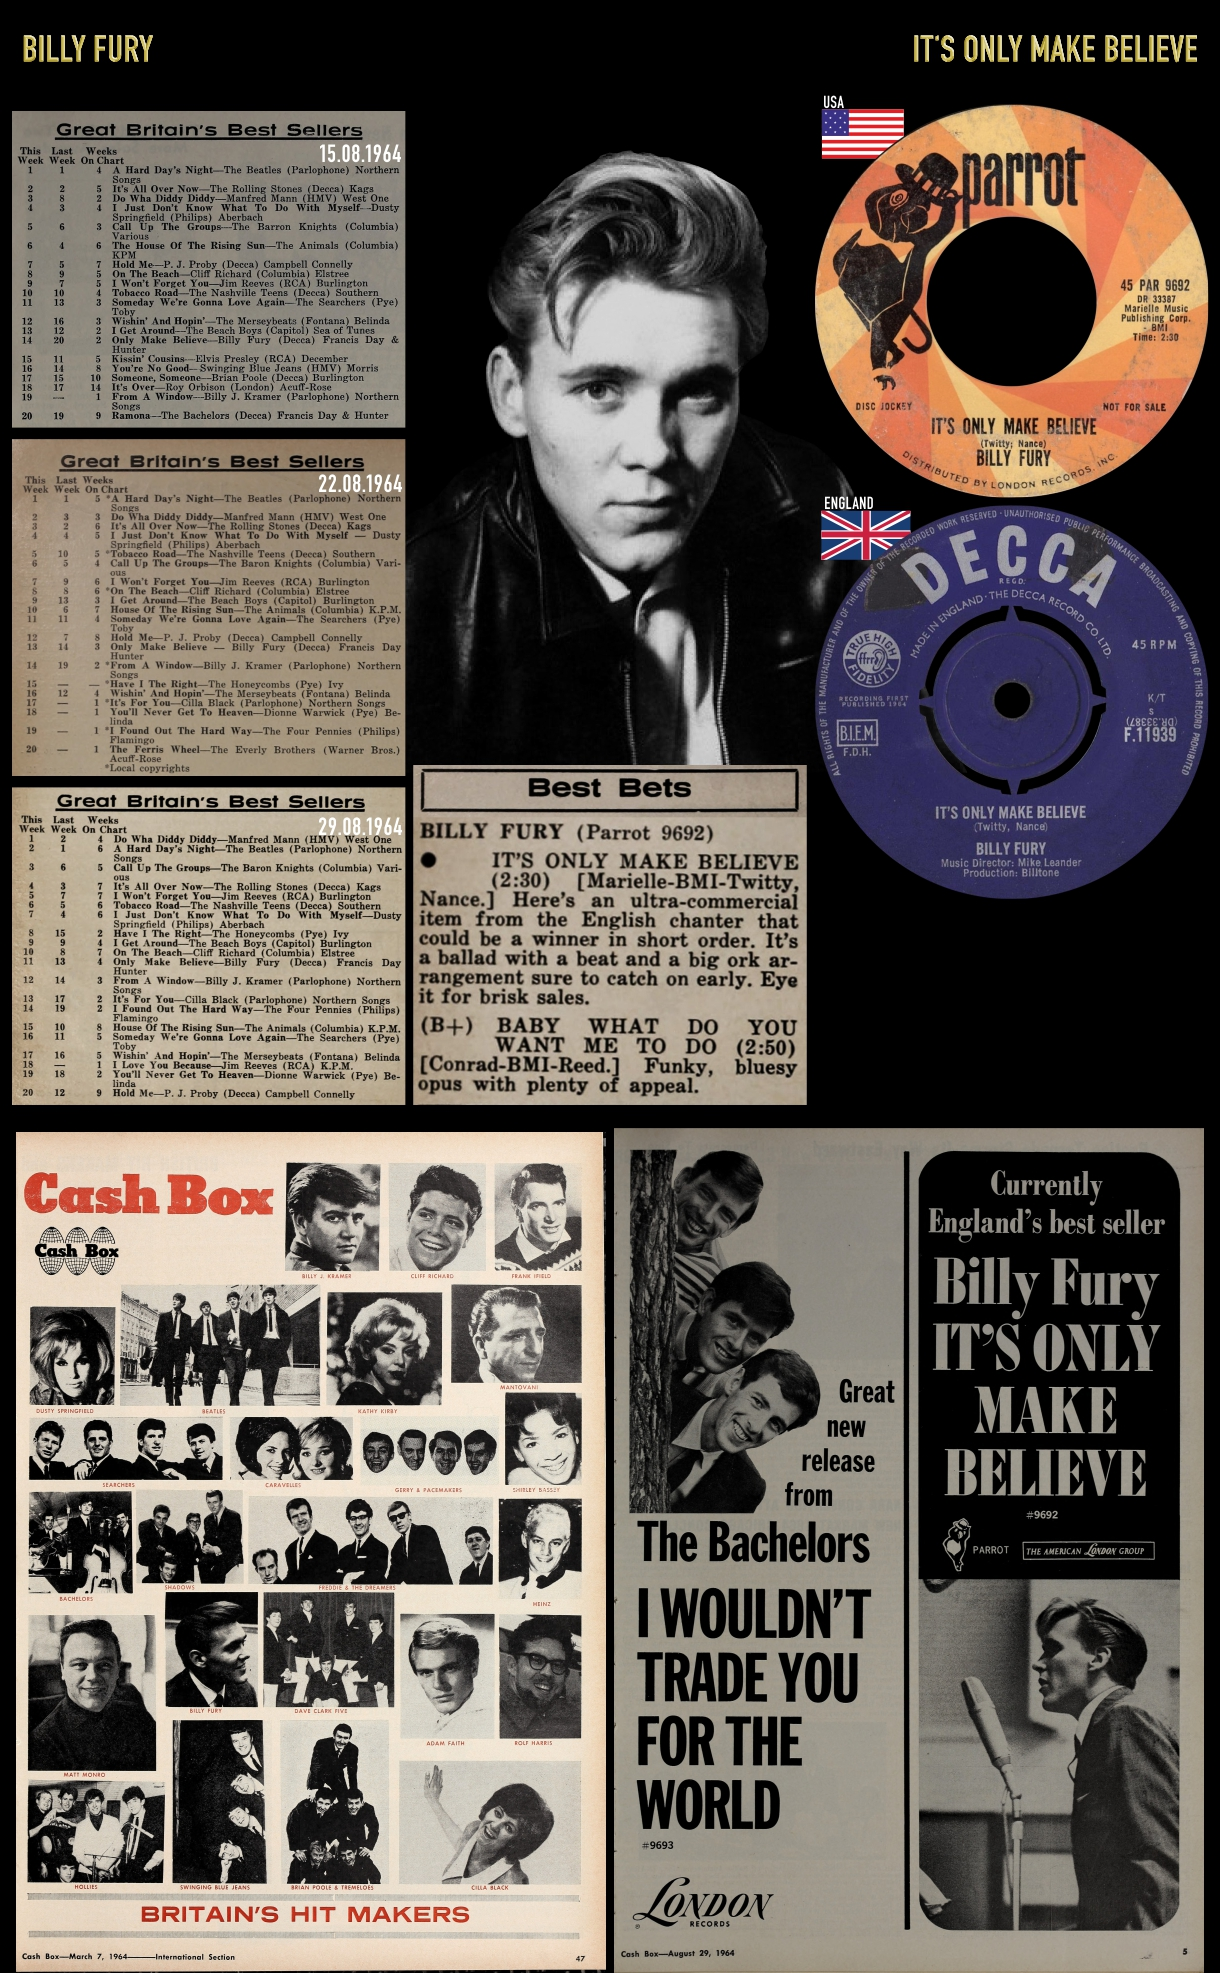 640725_Billy Fury_It's Only Make Believe